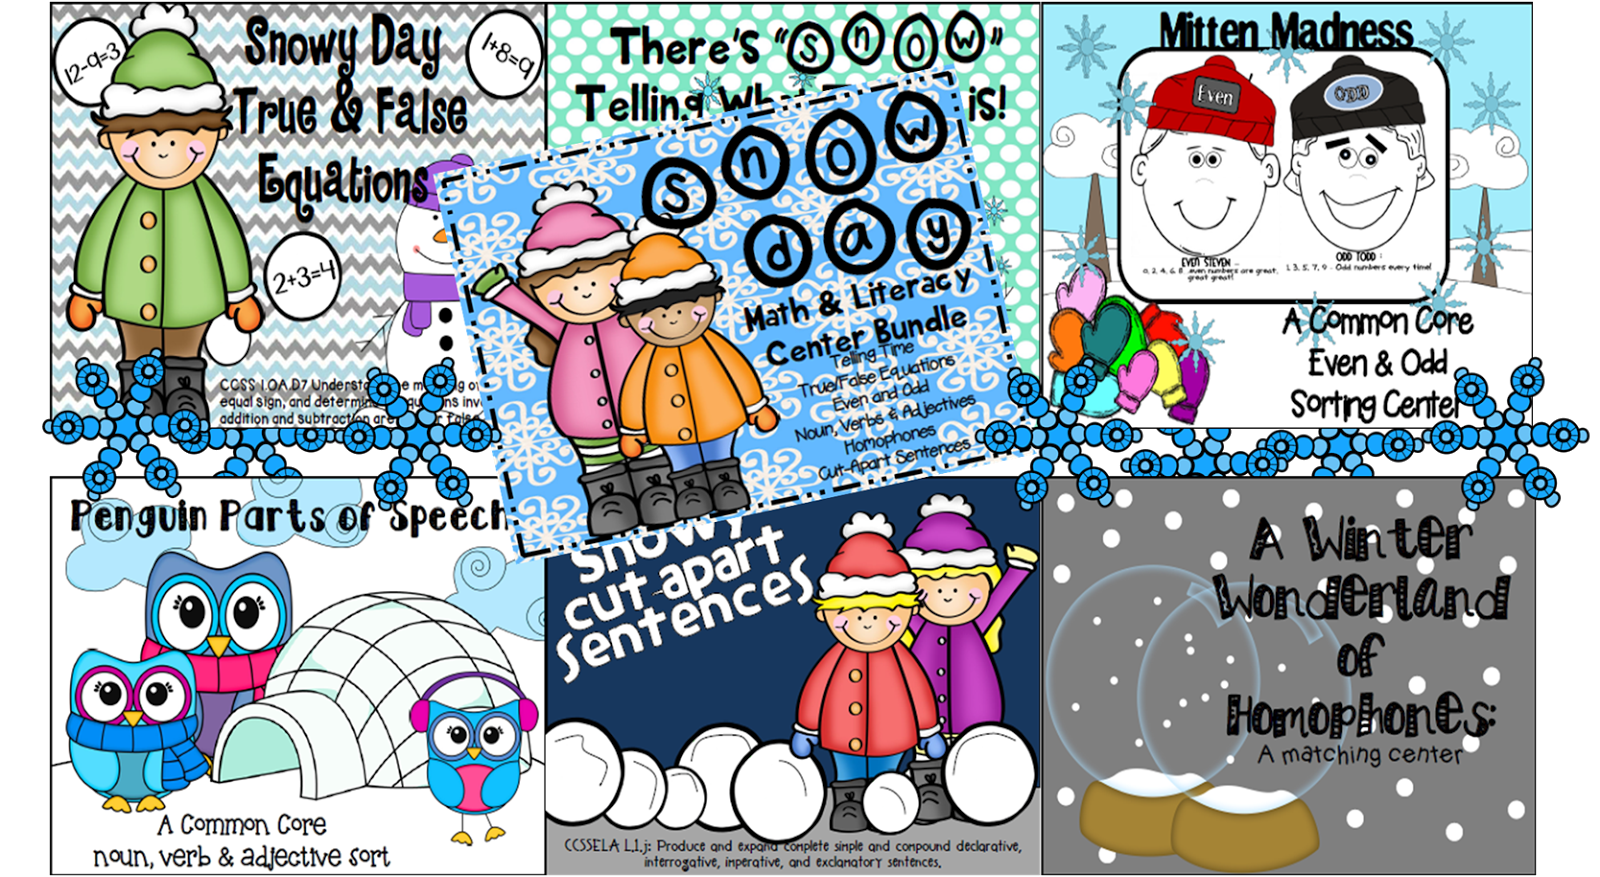 http://www.buysellteach.com/Product-Detail/1260/snowy-day-math-literacy-centers-common-core-aligned